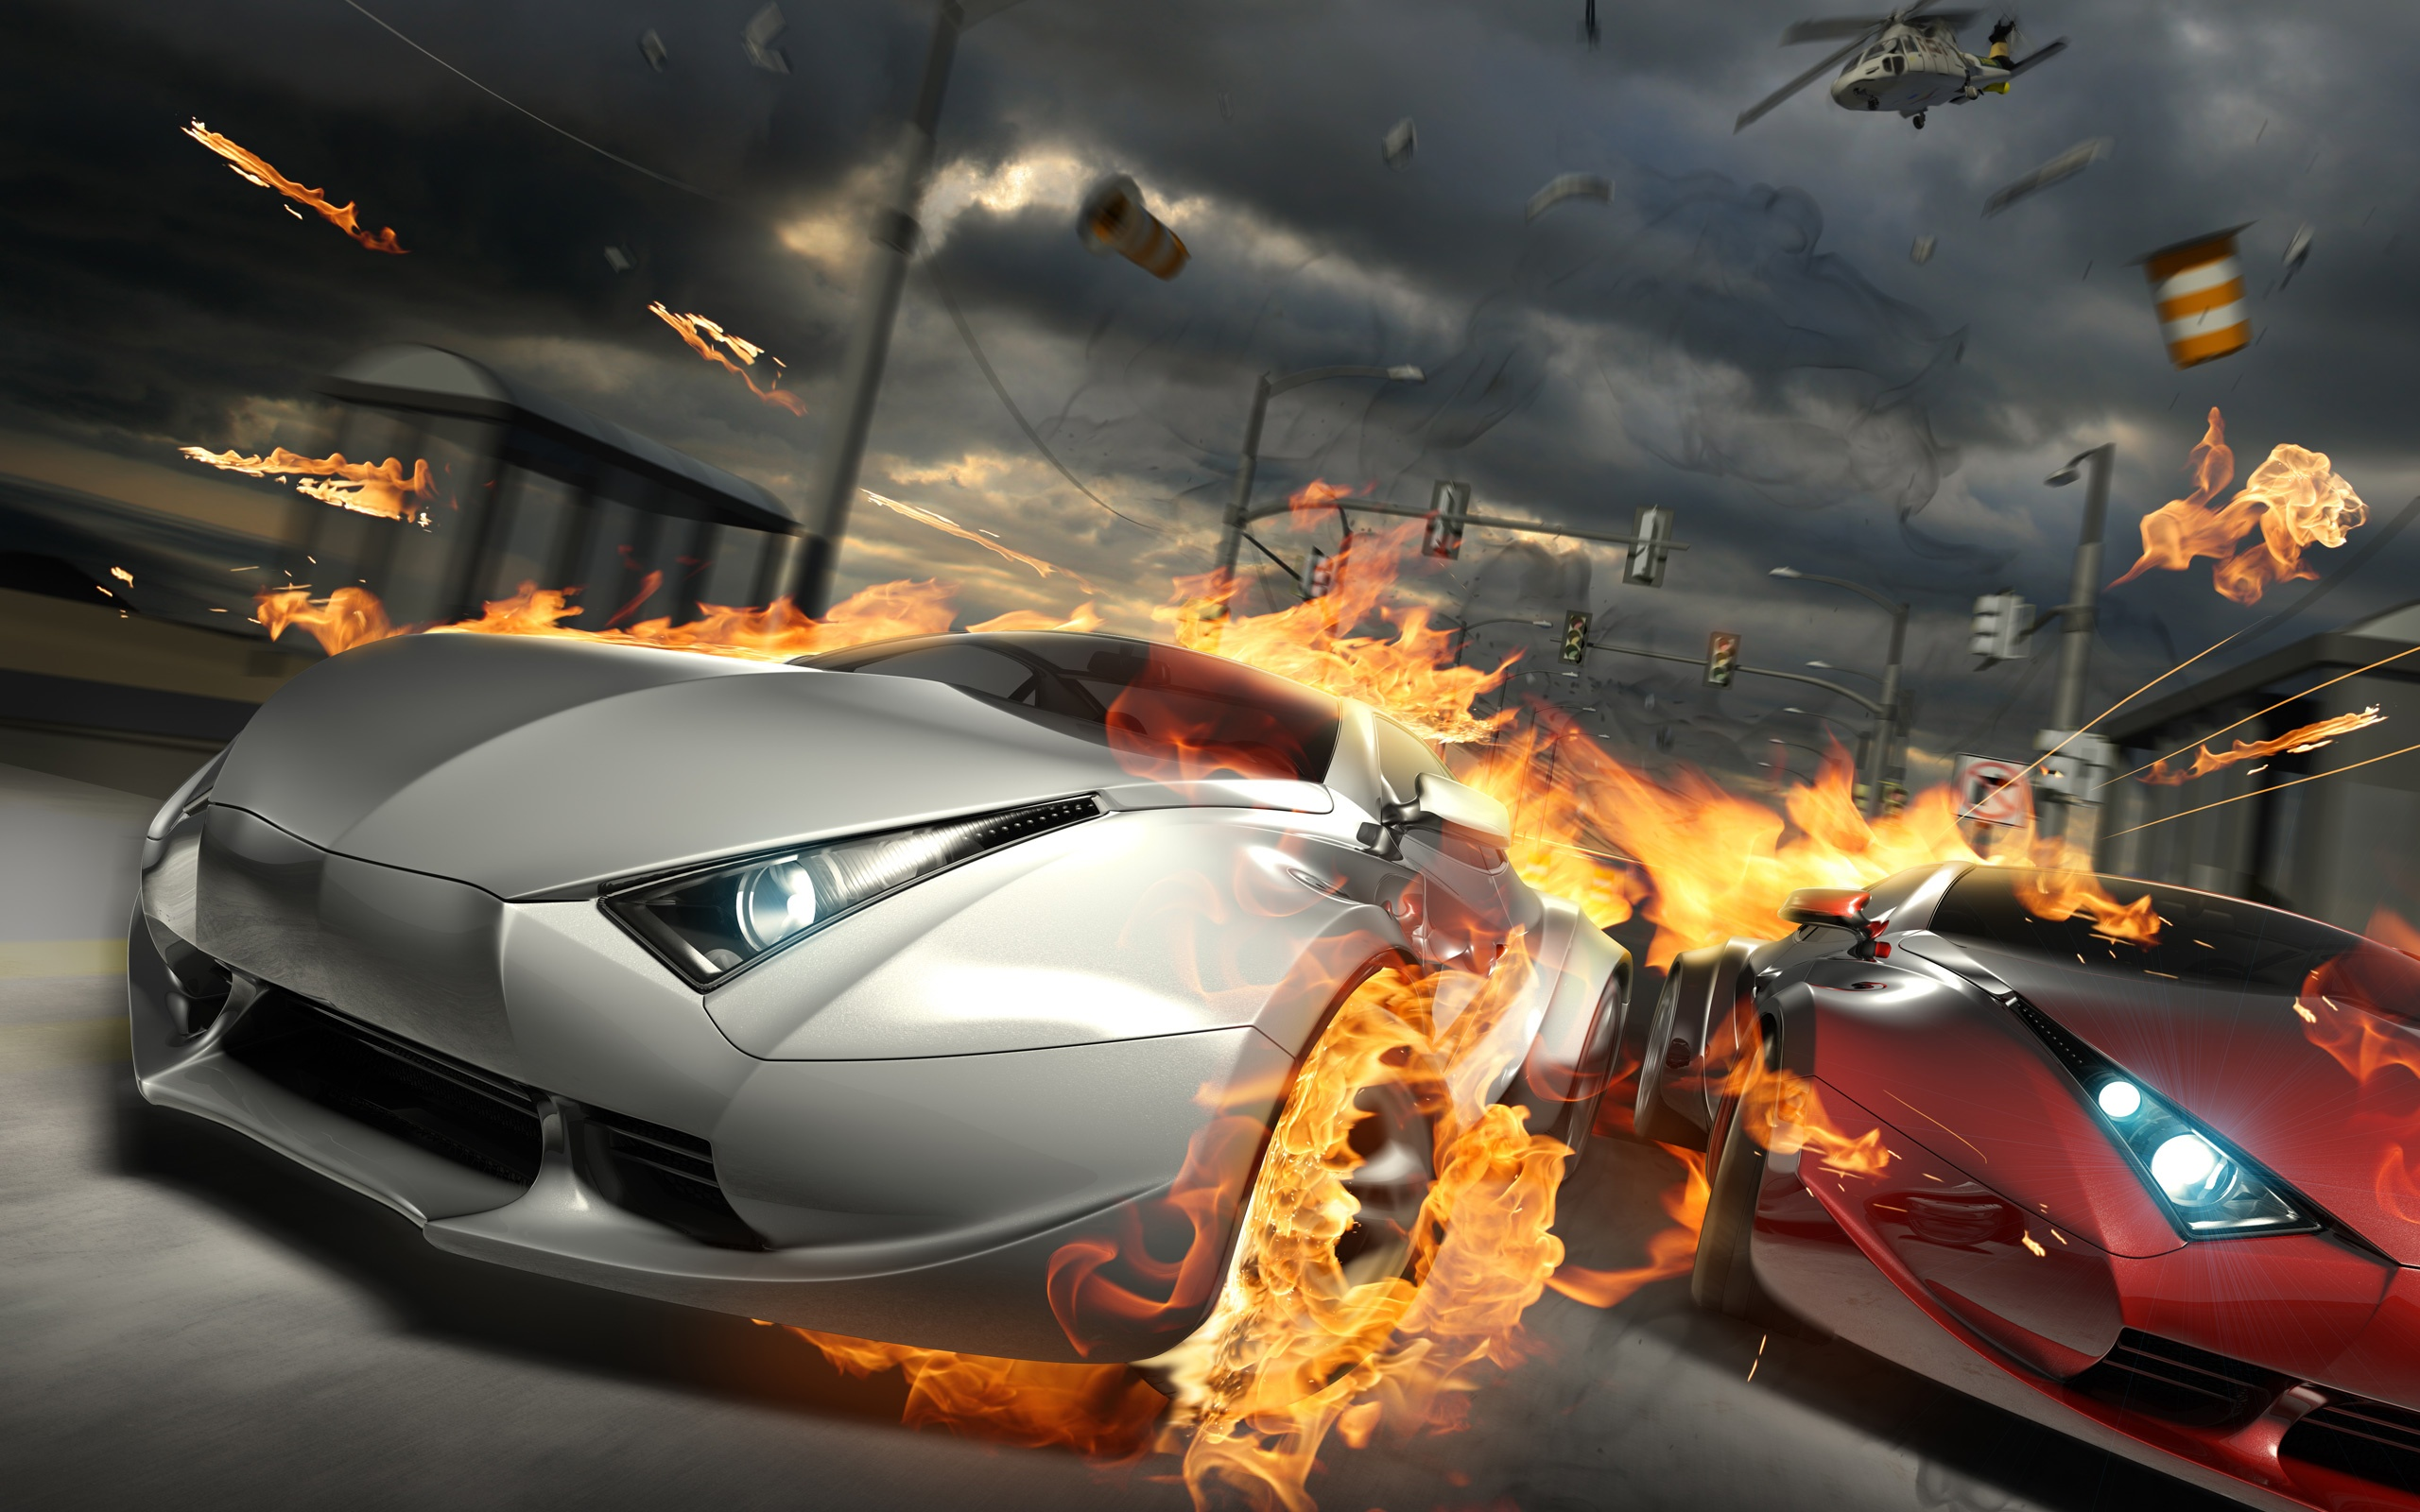 Car Racing Games Wallpapers For Free Download About - Sports cars racing games